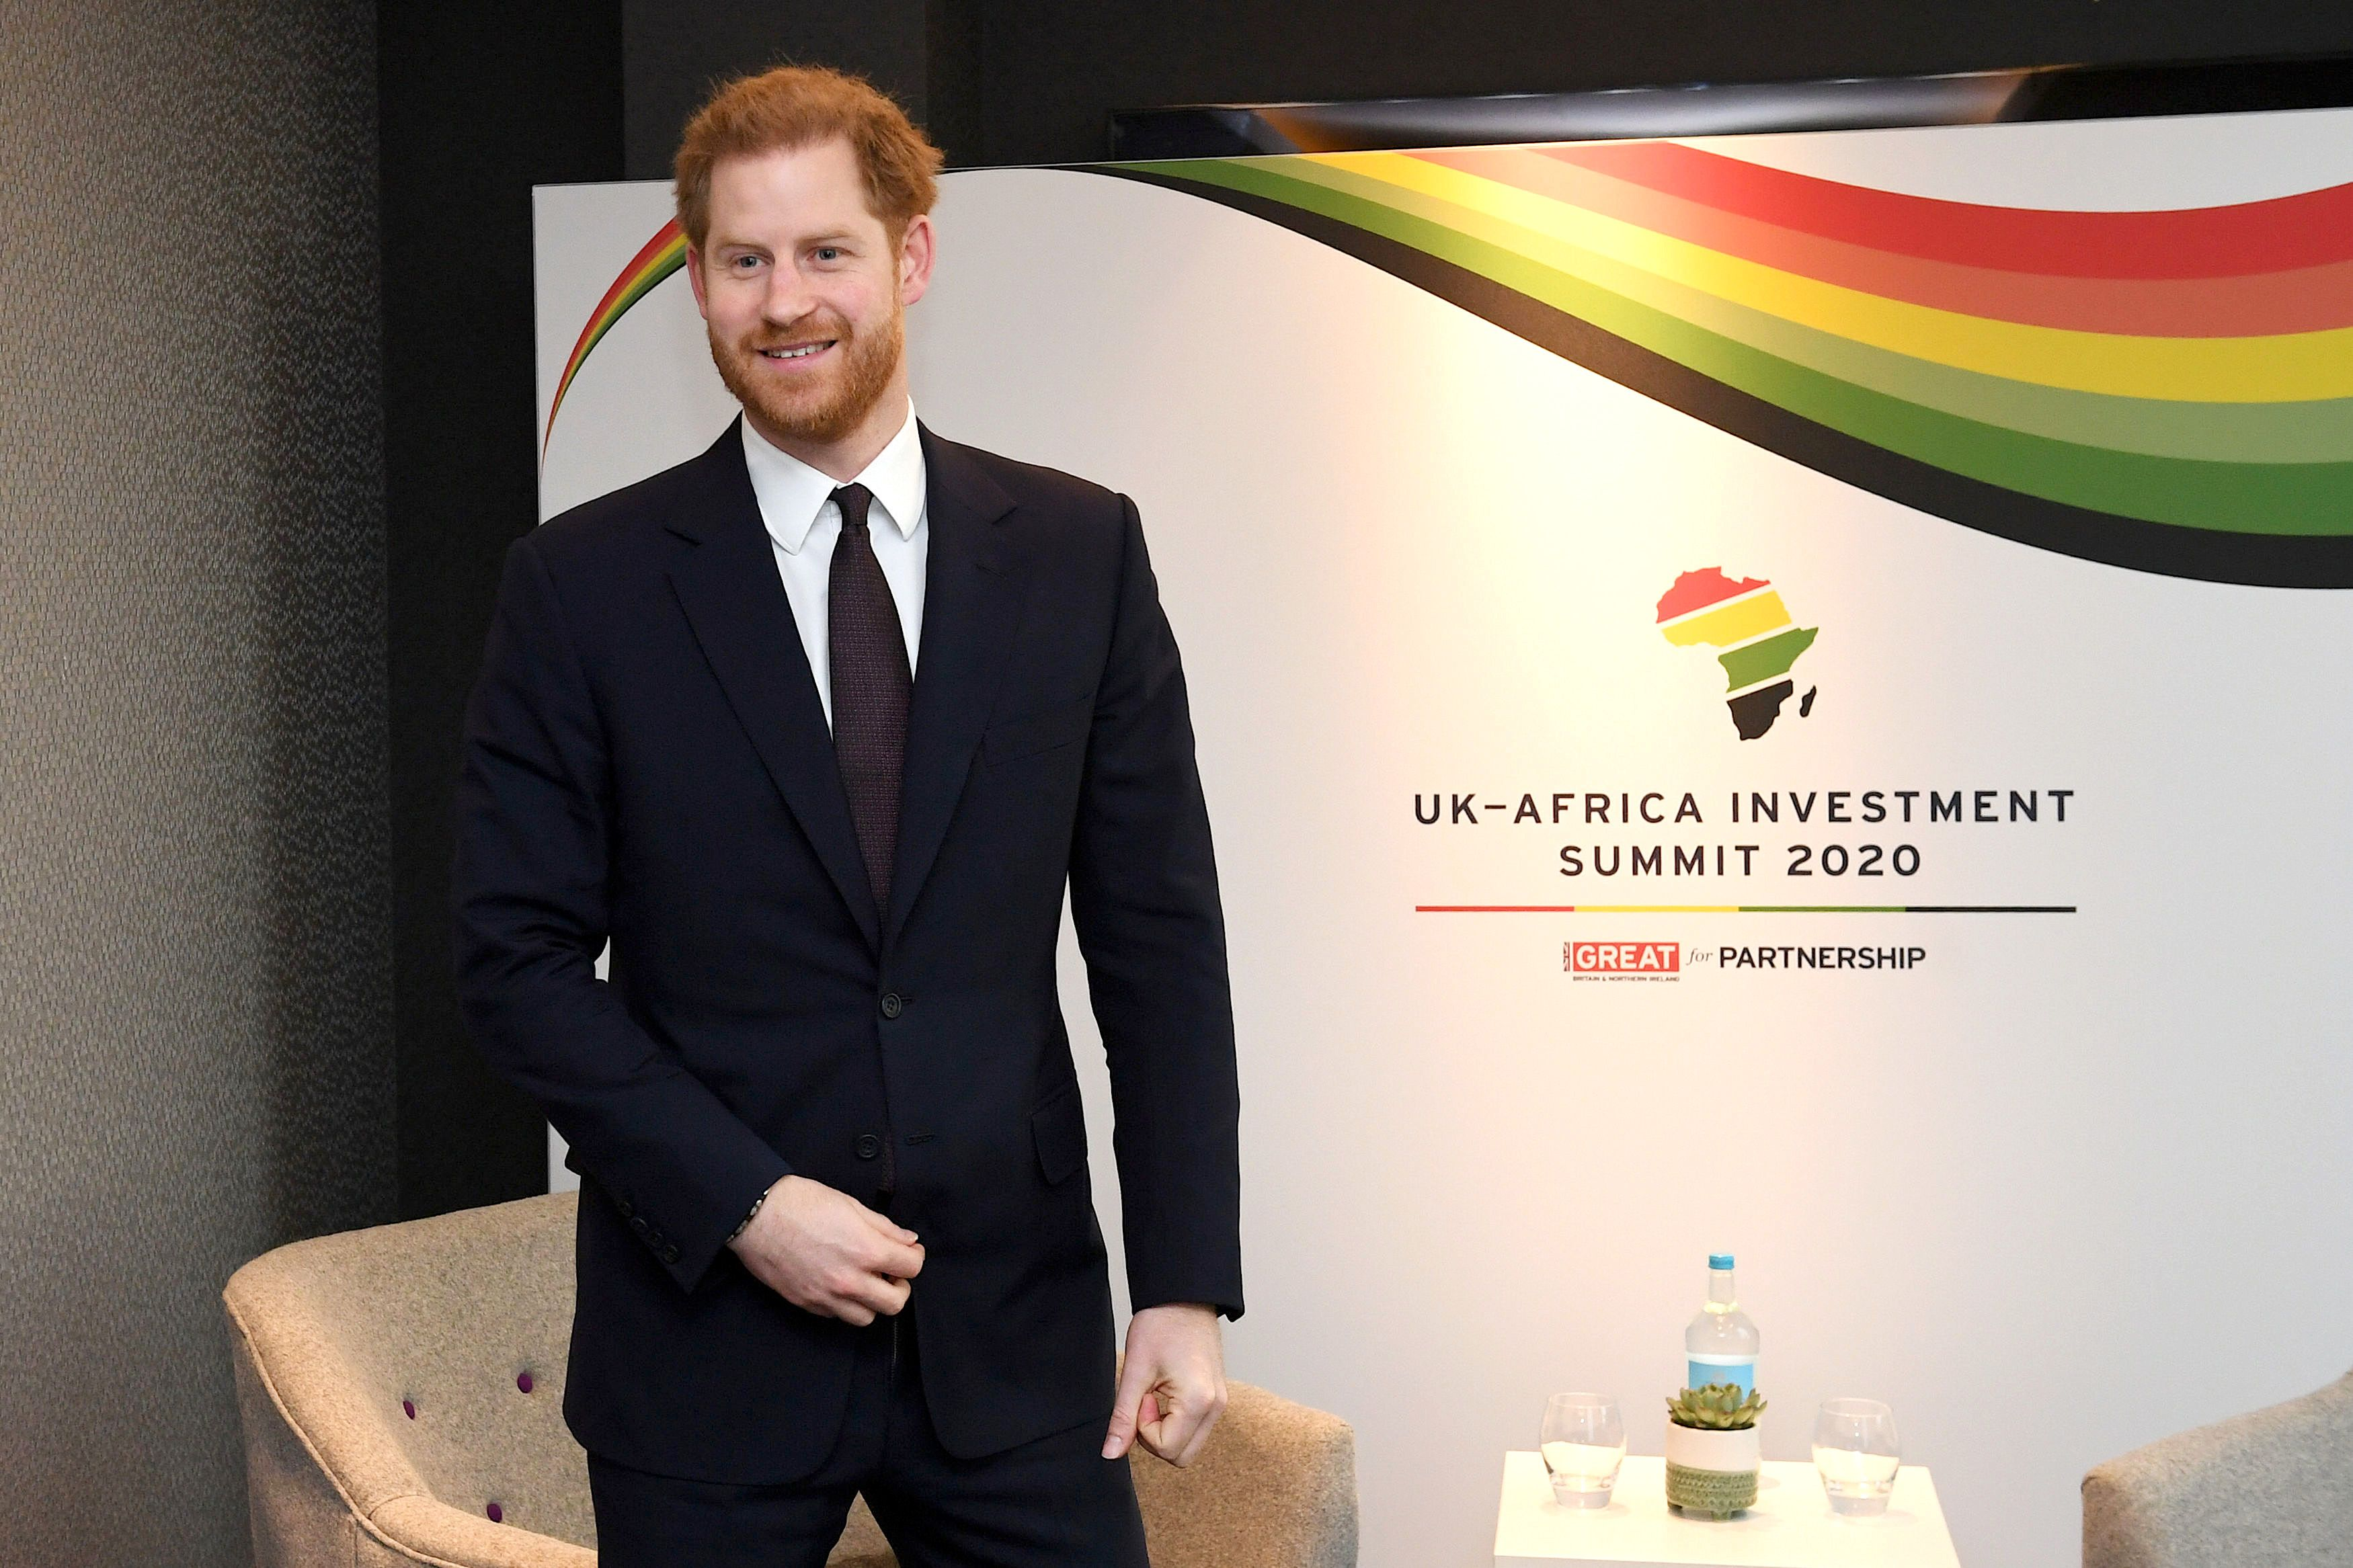 Prince Harry cracks out the dad jokes in a new Instagram post